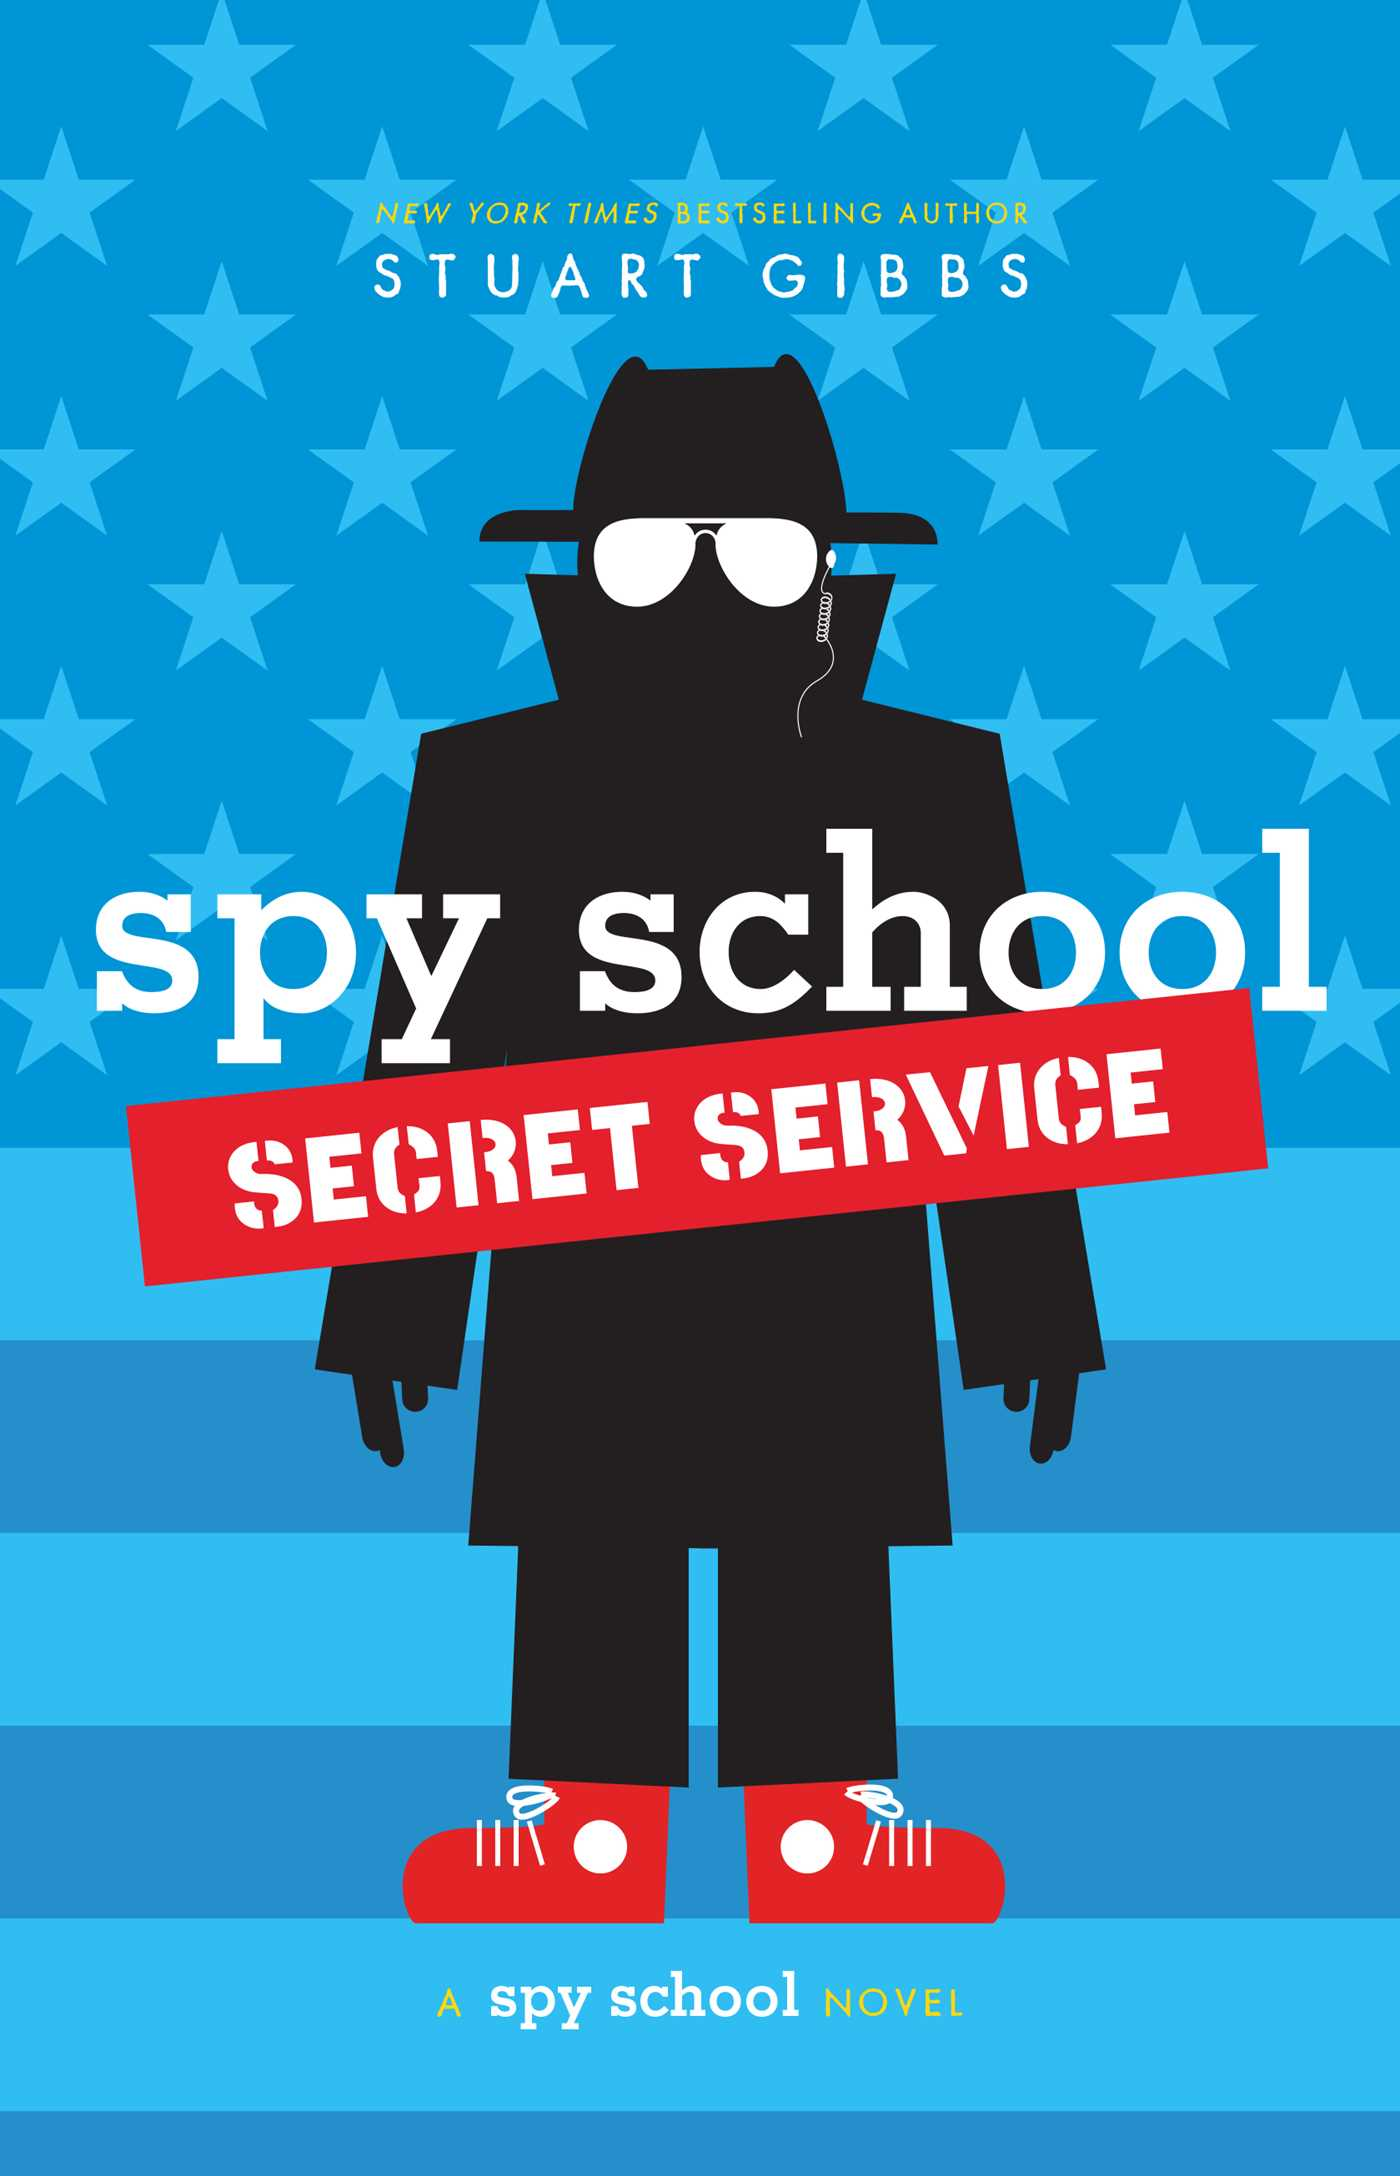 stuart-gibbs-spy-school-secret-service.jpg